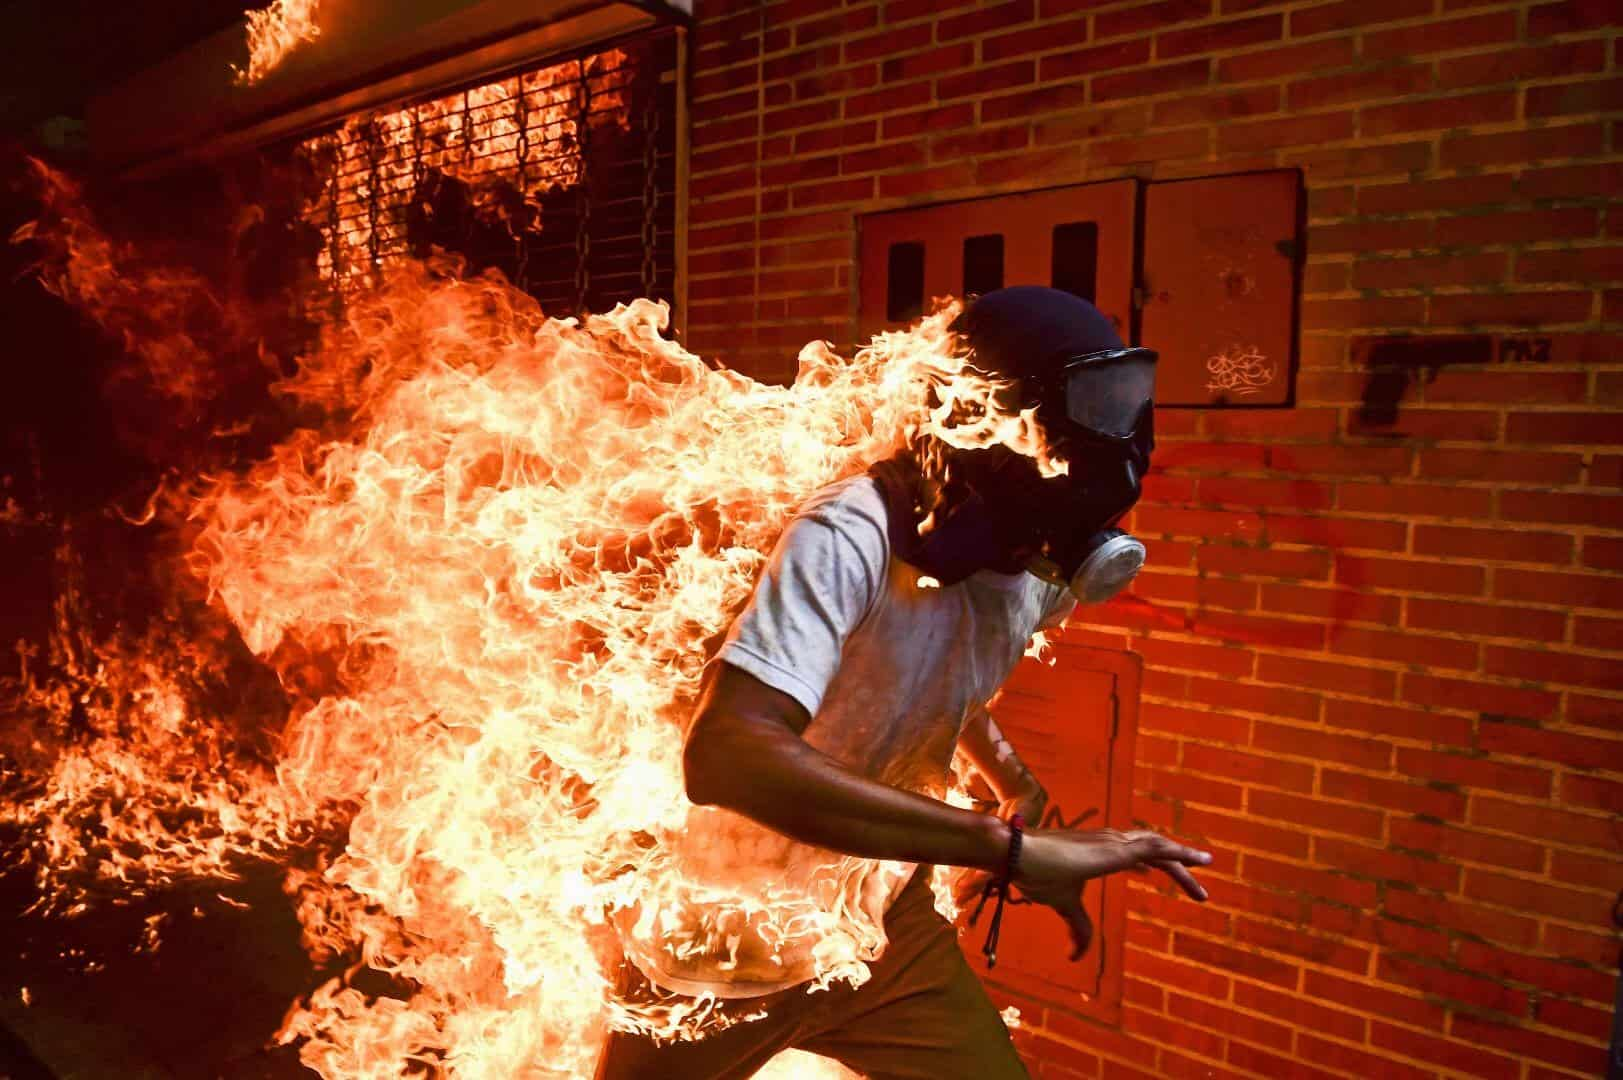 foto: Ronaldo Schemidt - Crisi in Venenzuela - (World Press Photo)